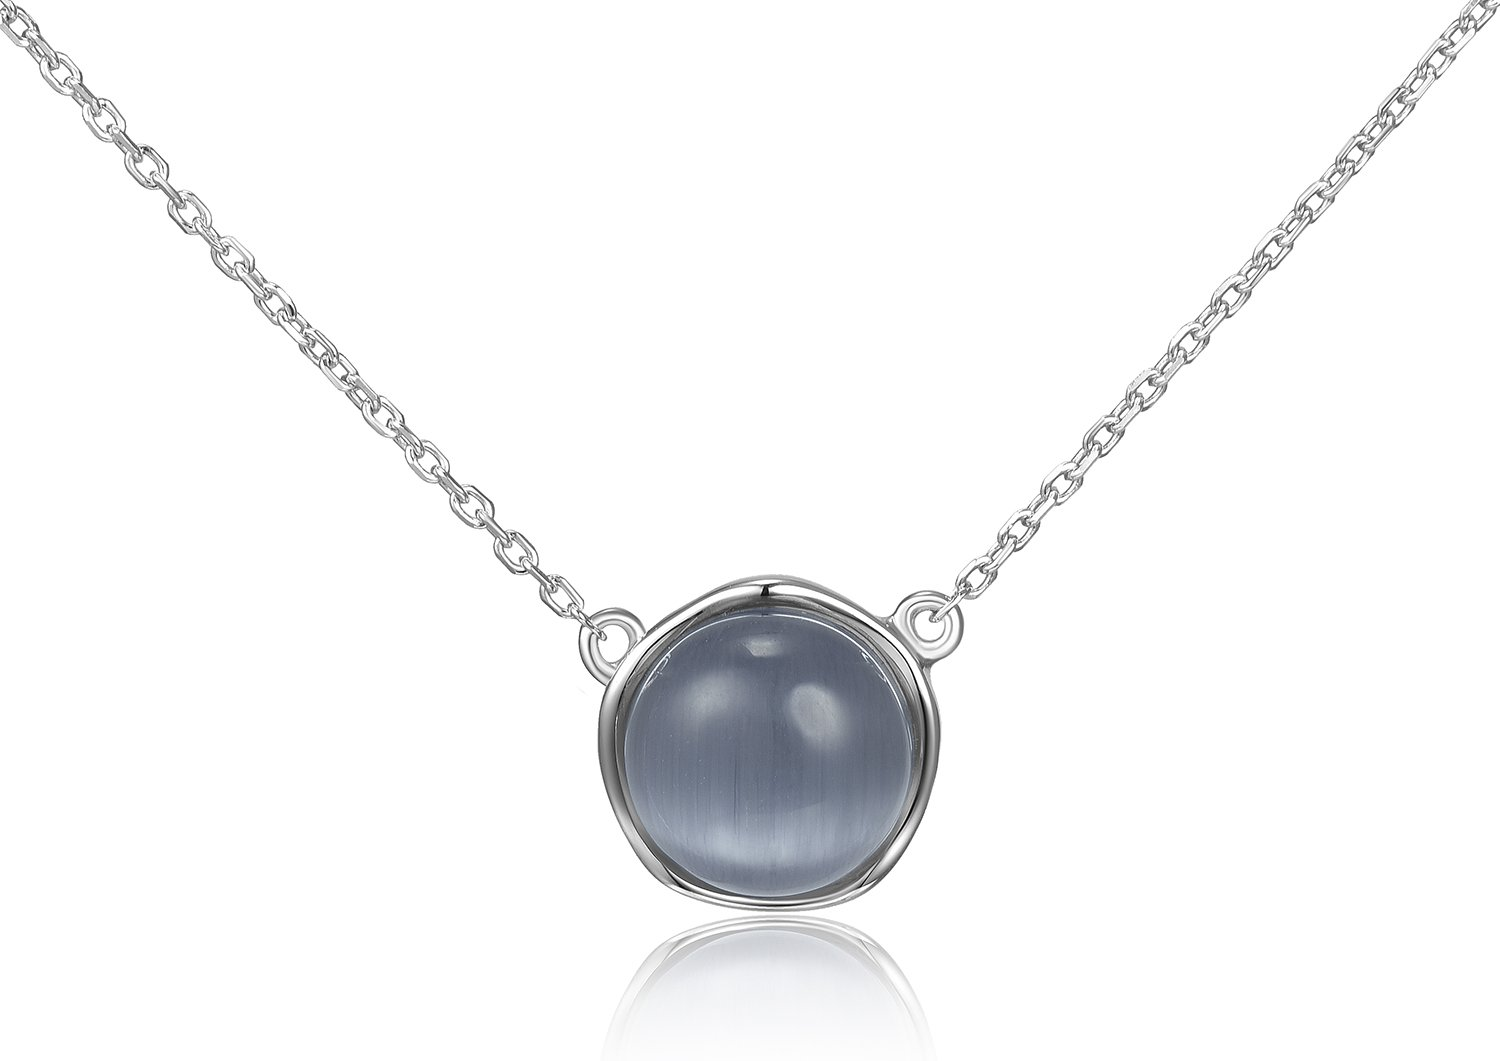 Lanfeny Rhodium Plated 925 Sterling Silver Pendant Necklace with Blue Grey Ball Simulated Cat's Eye Solitaire